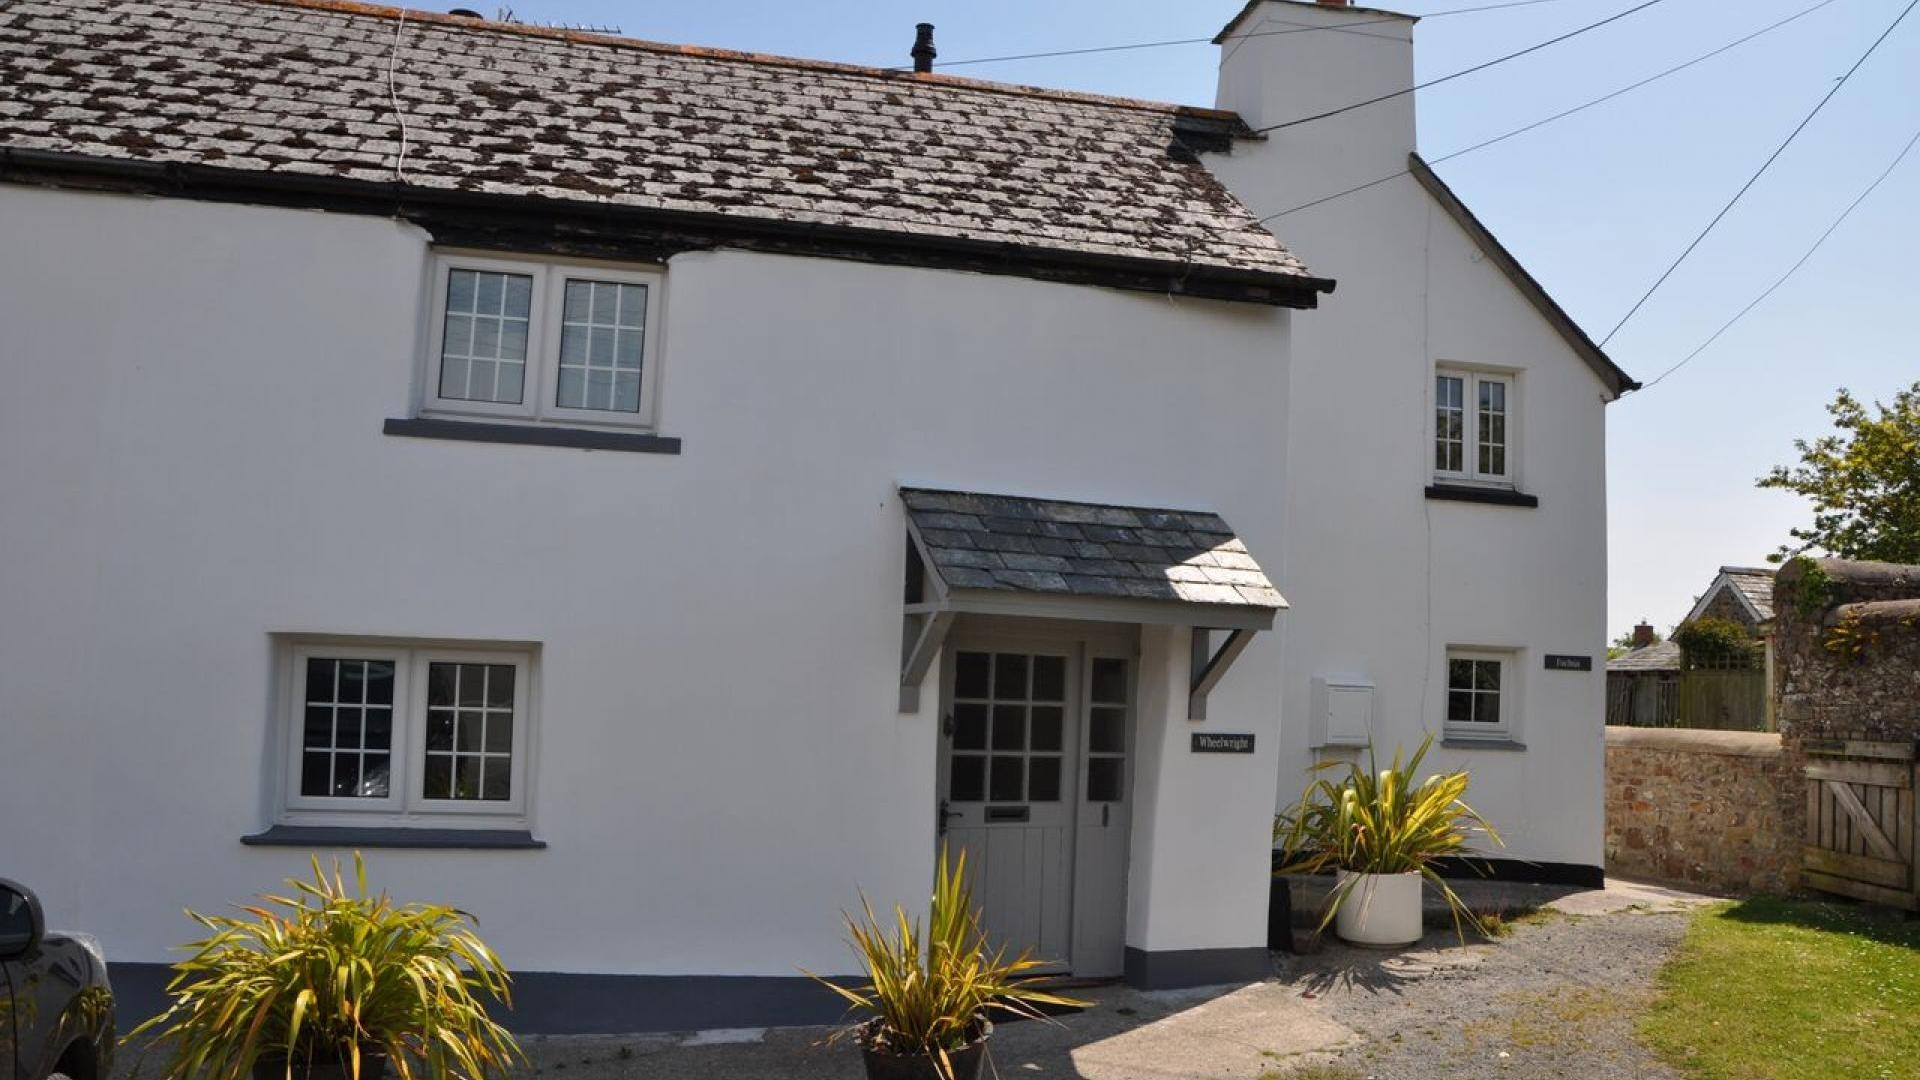 2 Bedroom Private house/shared grounds in Cornwall, United Kingdom